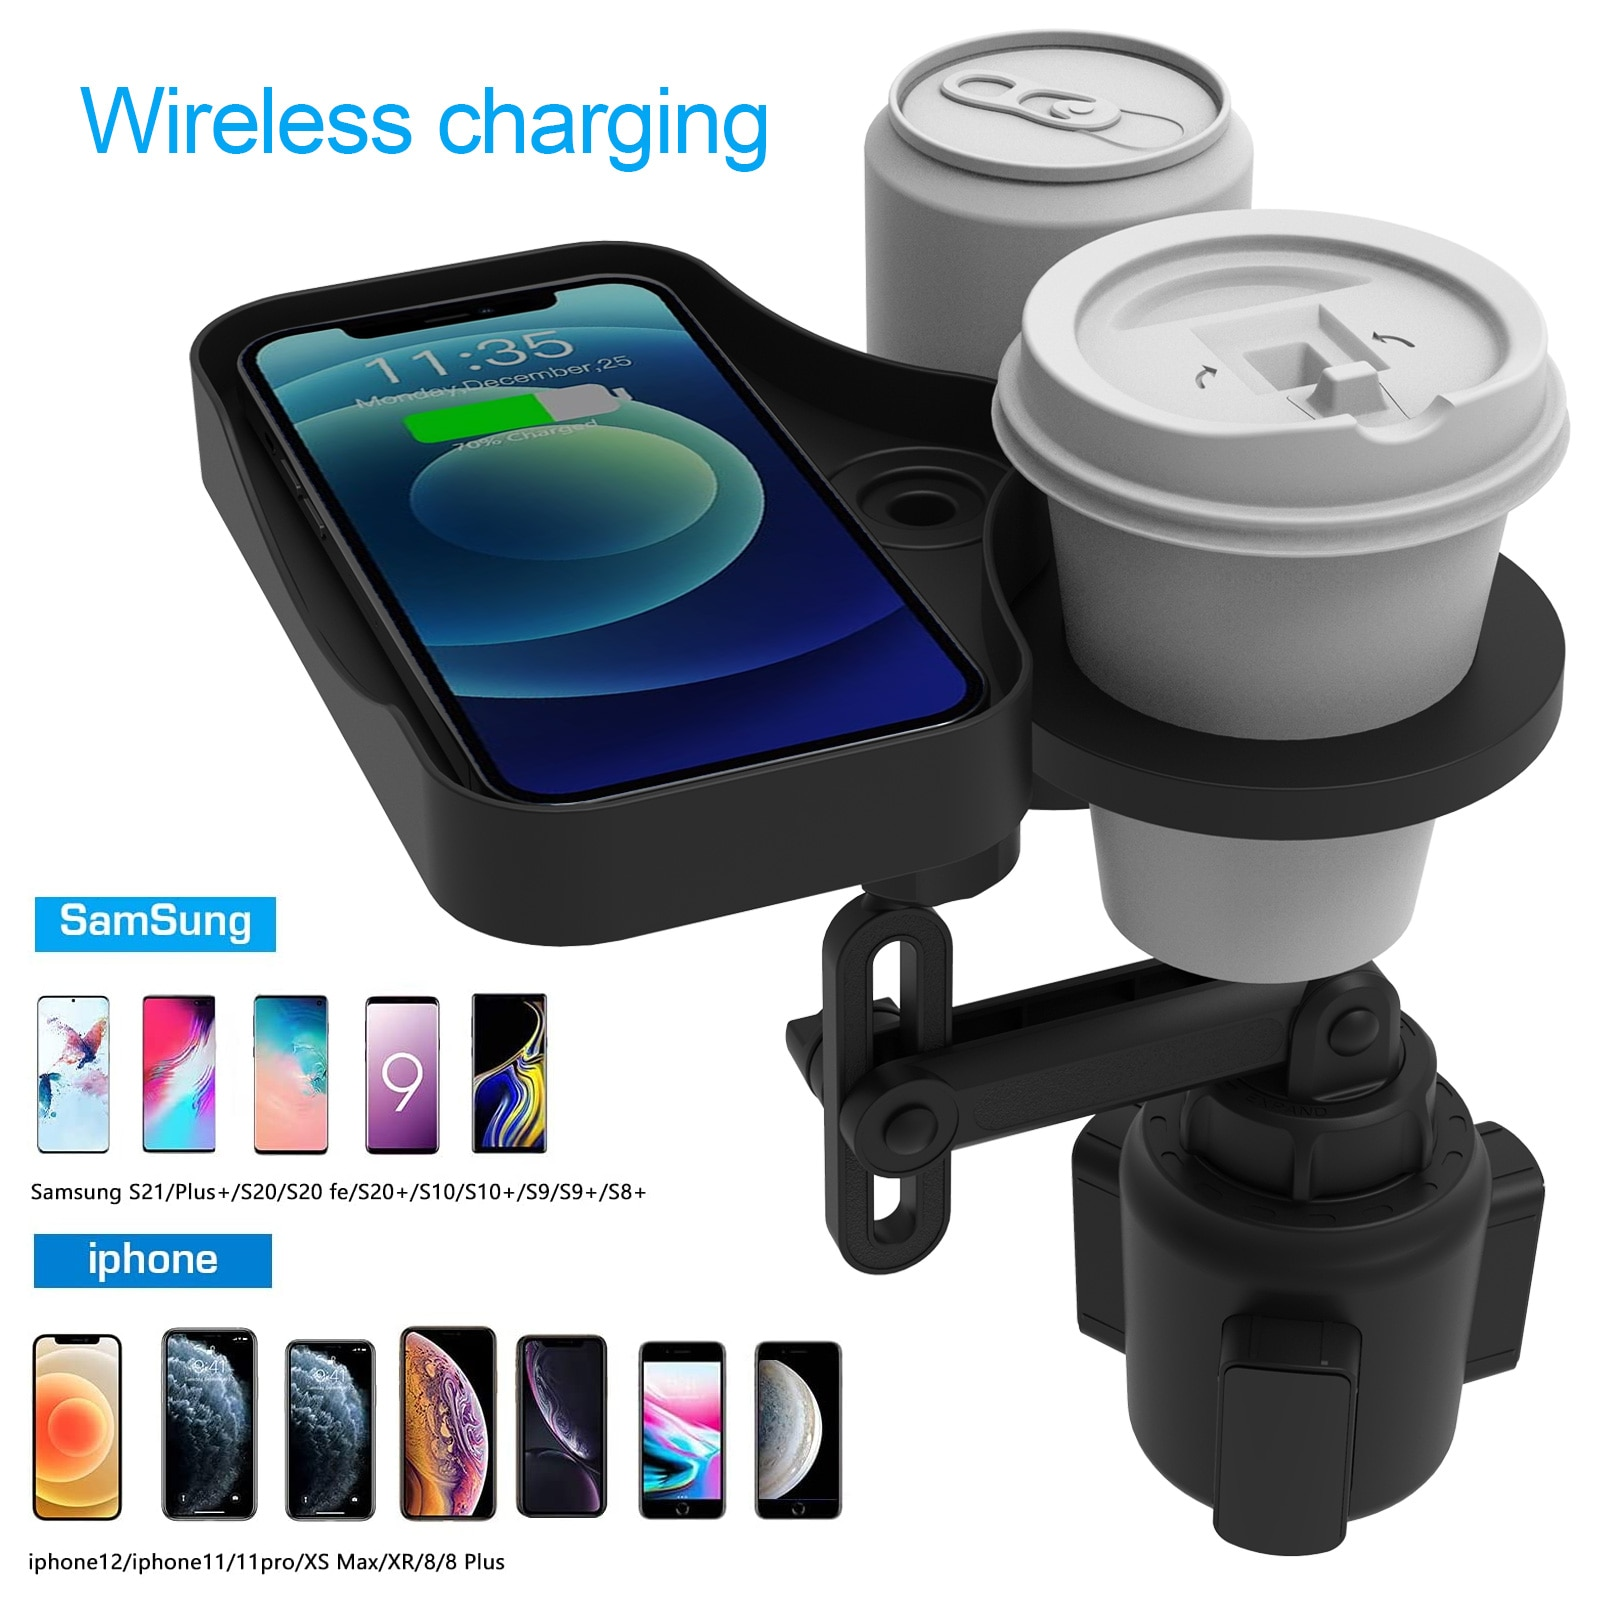 Car Water Cup Holder Multifunctional Rotatable With Wireless USB Charging Tray Car Mobile Phone Beverage Bottle Holder Extender